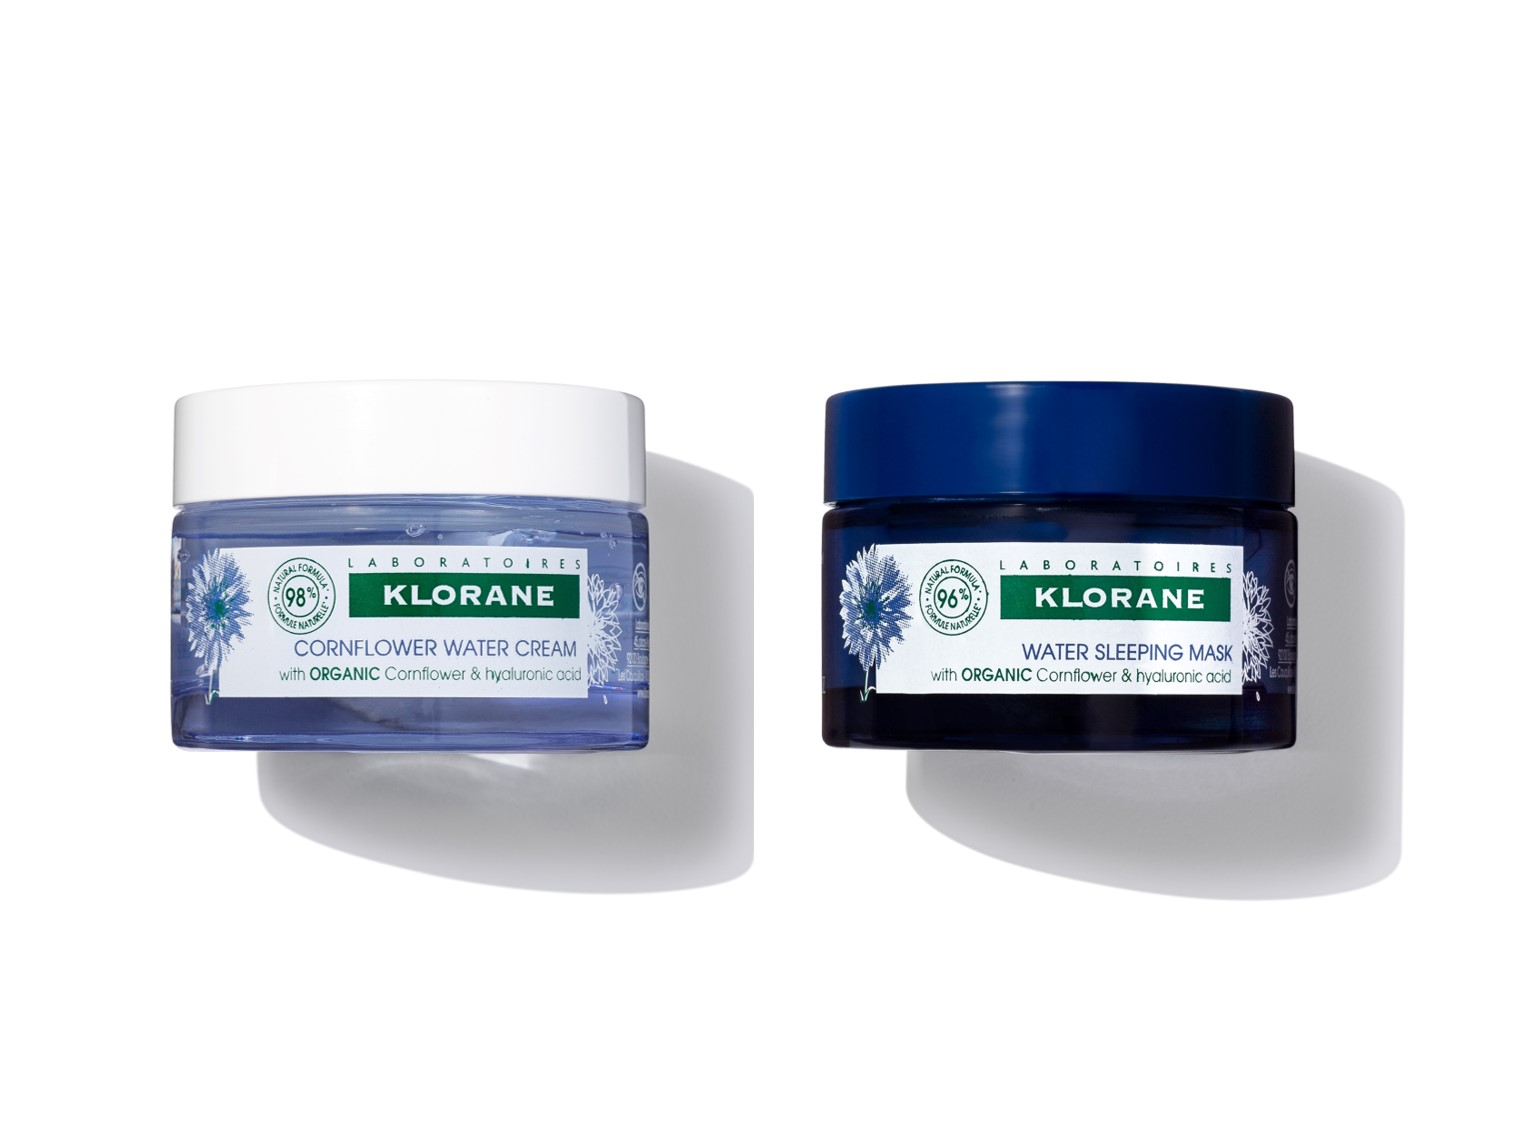 Klorane Hydrating Water Cream and Water Sleeping Mask with Cornflower